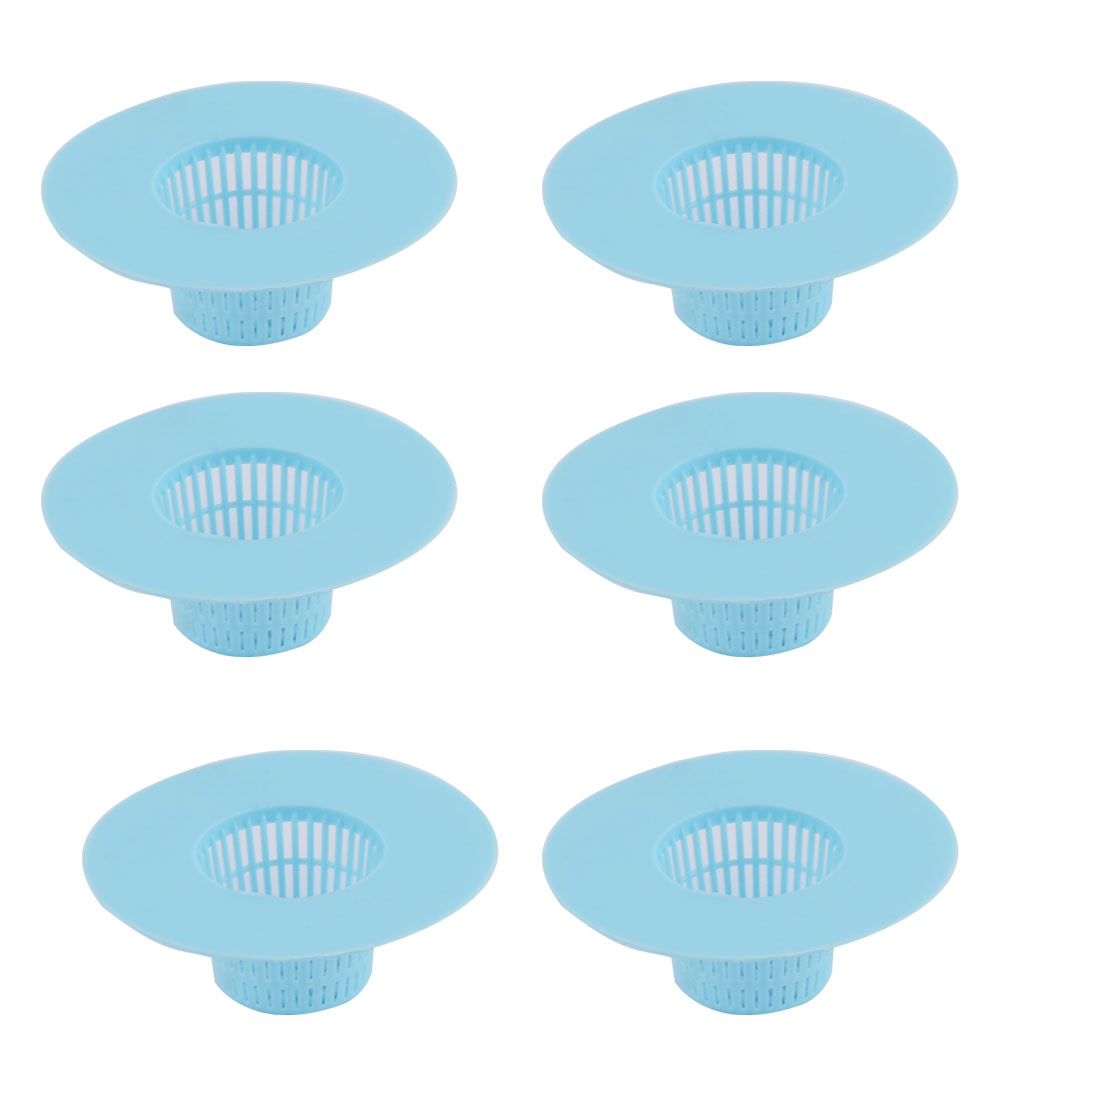 Unique Bargains 6pcs Bathroom Plastic Wash Face Basin Water Sink Drainer Strainer